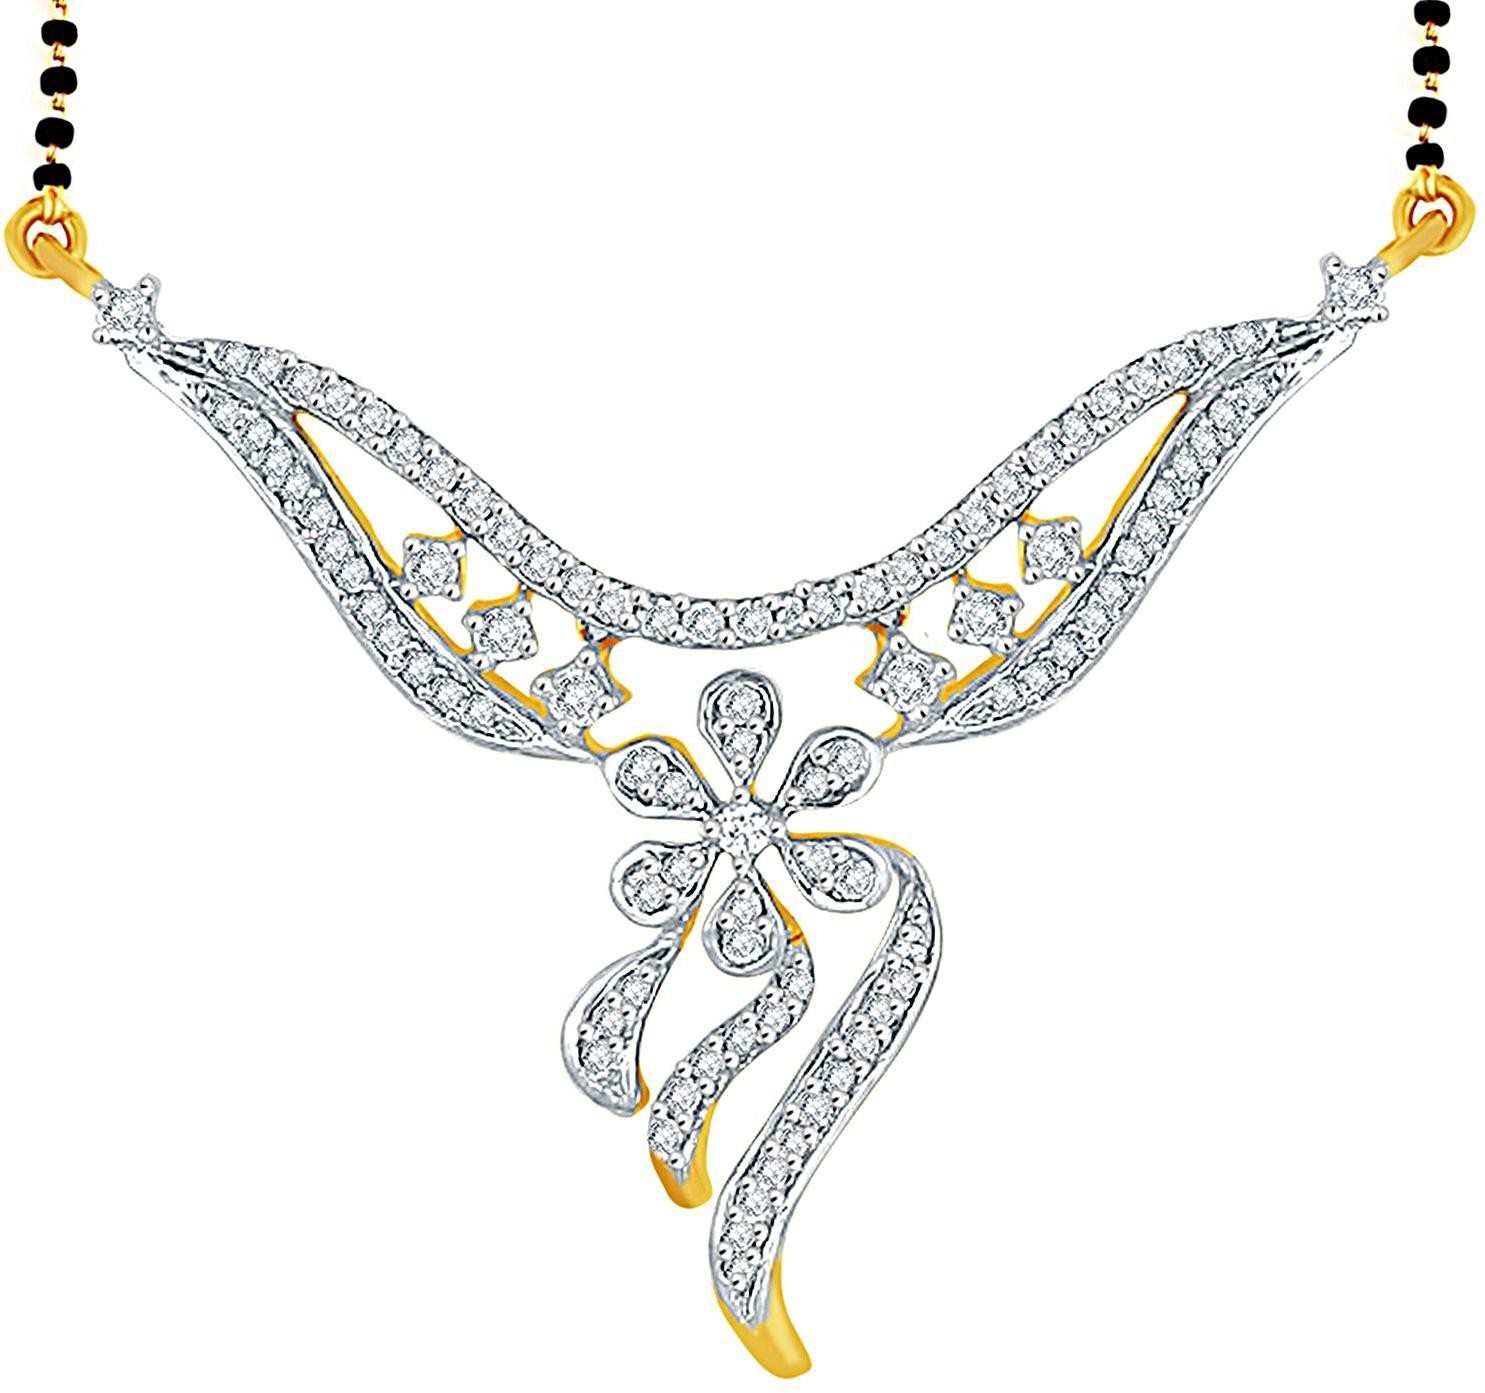 Deals - Kalol - Mangalsutras <br> Gold & Diamond Jewellery<br> Category - jewellery<br> Business - Flipkart.com